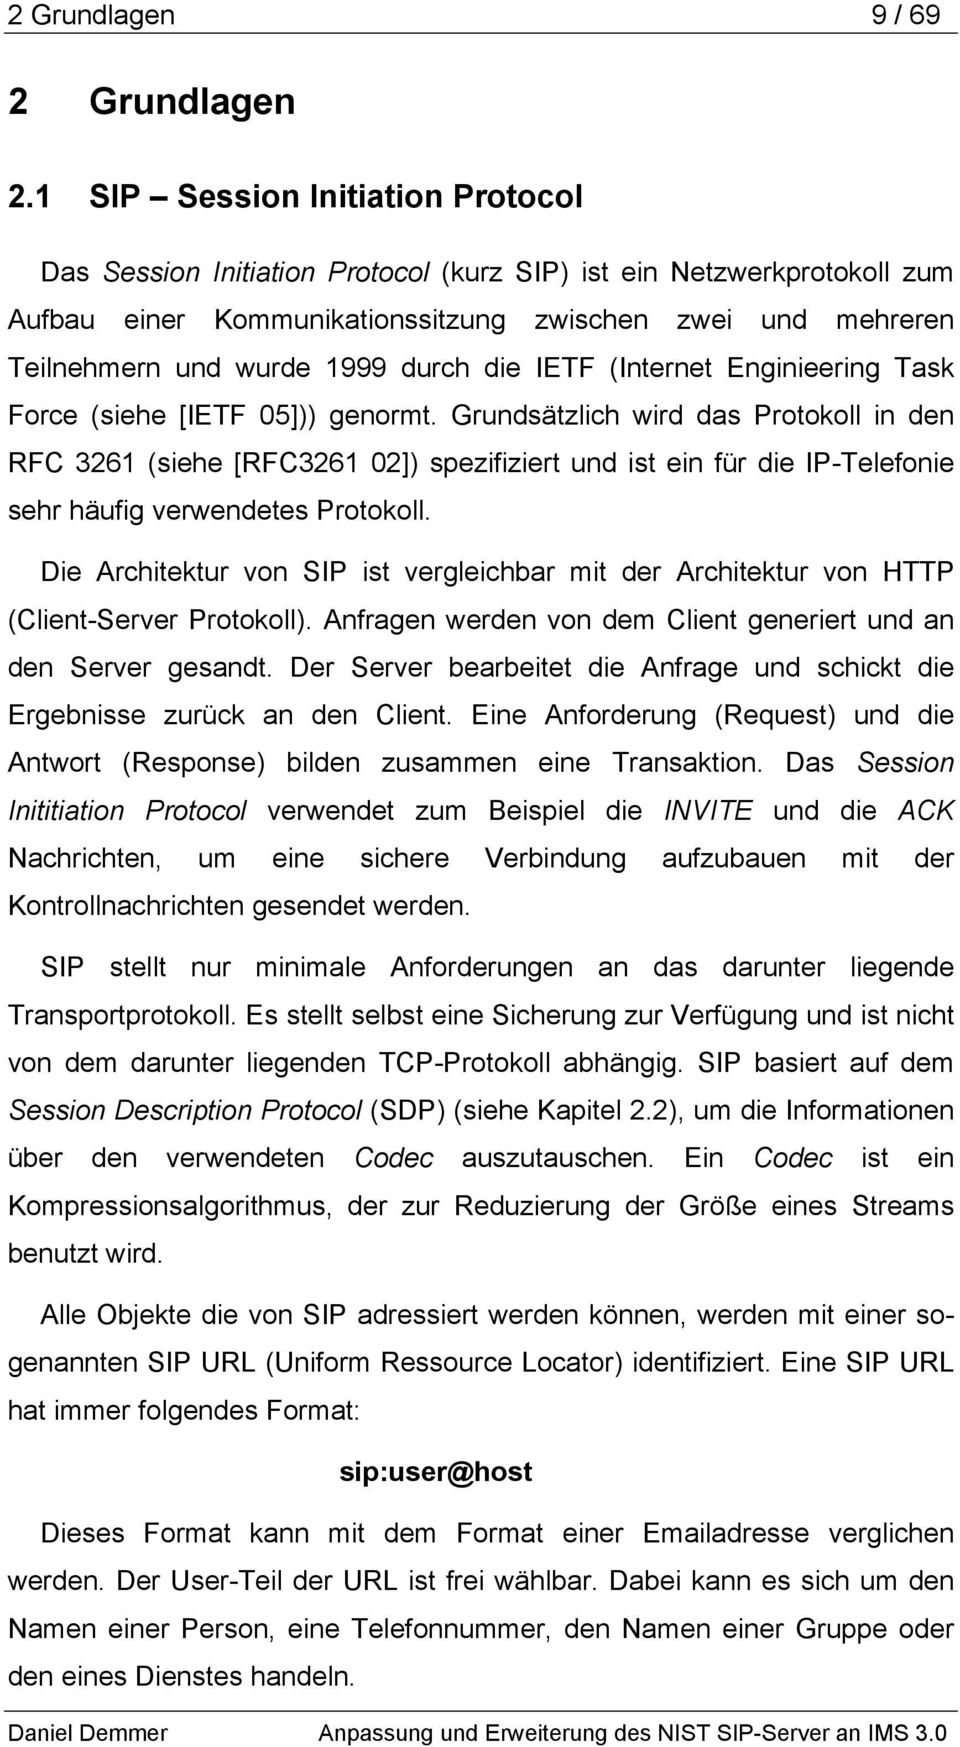 durch die IETF (Internet Enginieering Task Force (siehe [IETF 05])) genormt.